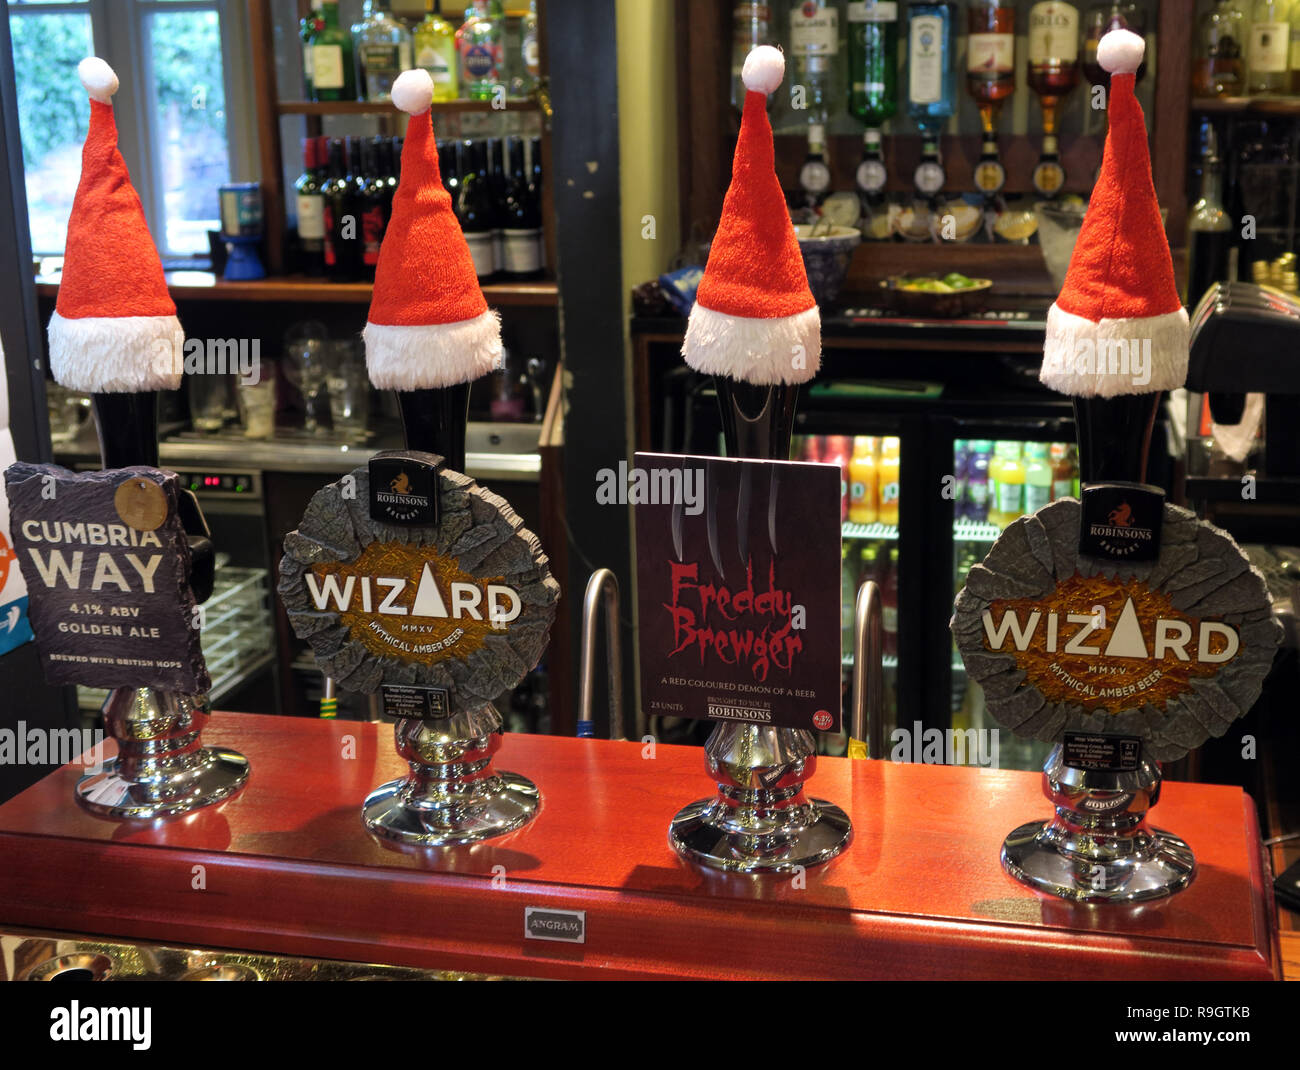 Robinsons brewery Stockport, bar of Real Ale Pumps, with Xmas hats, Cumbrian Way, wizard, Freddy Brugar, on a bar, Parr Arms, Grappenhall, Warrington - Stock Image